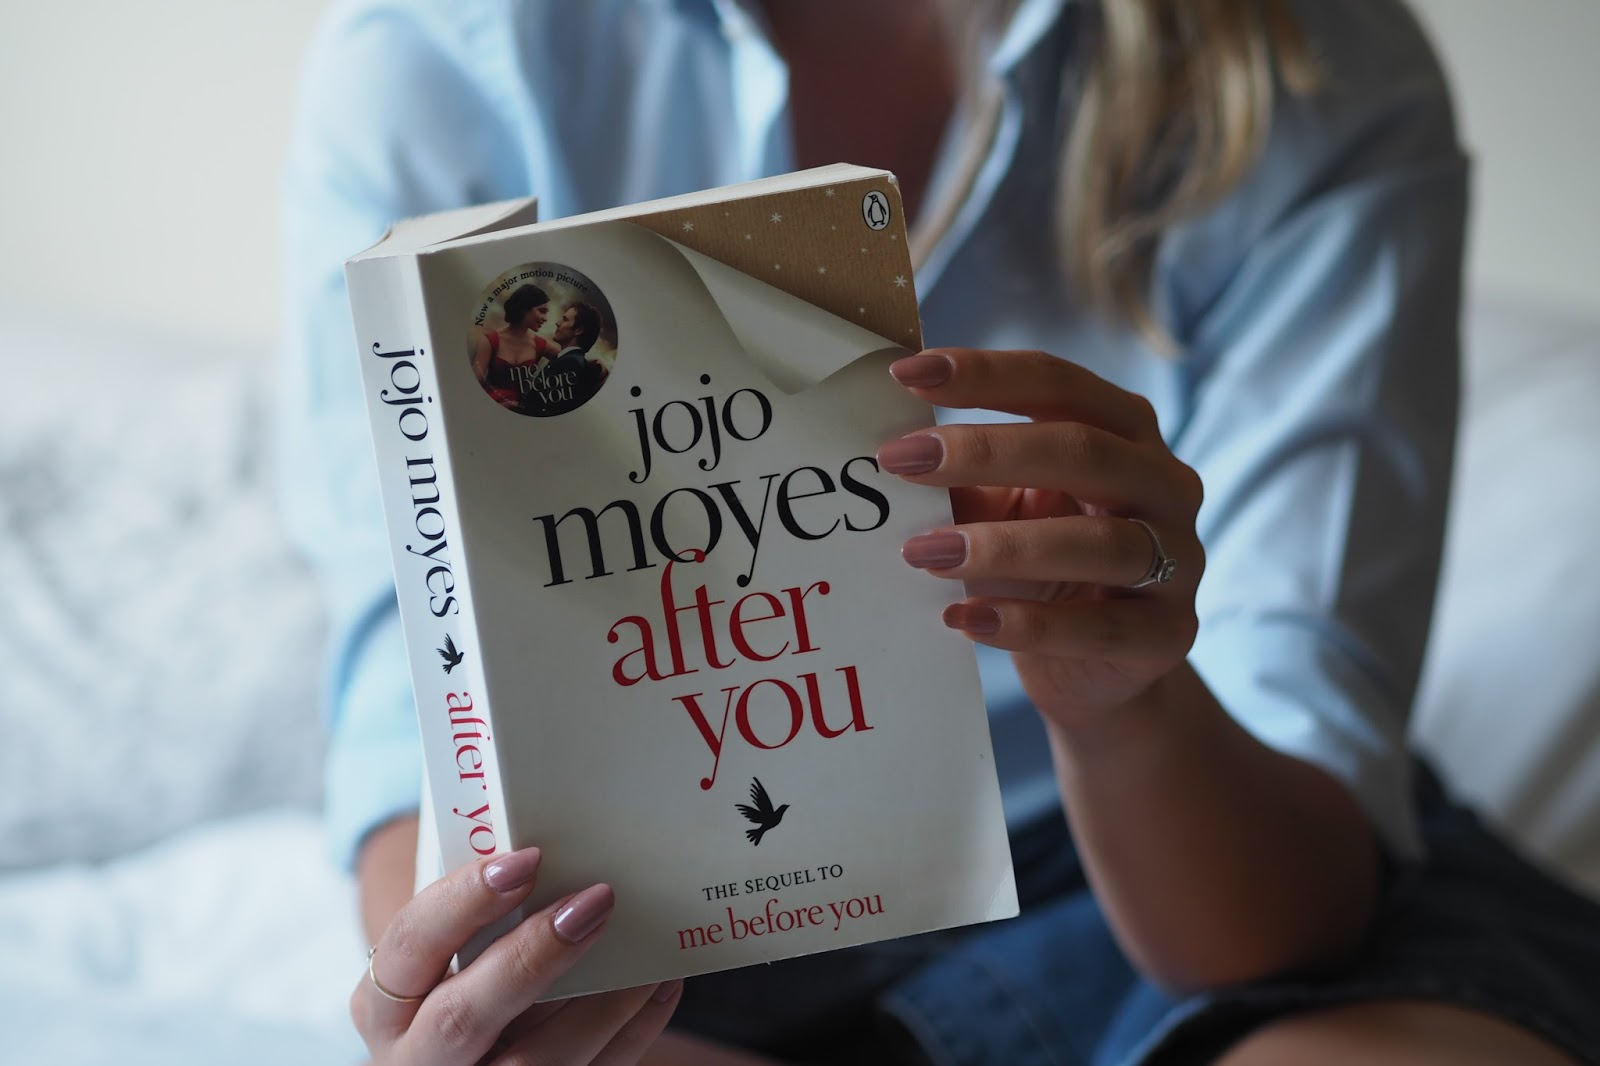 Jojo moyes after you